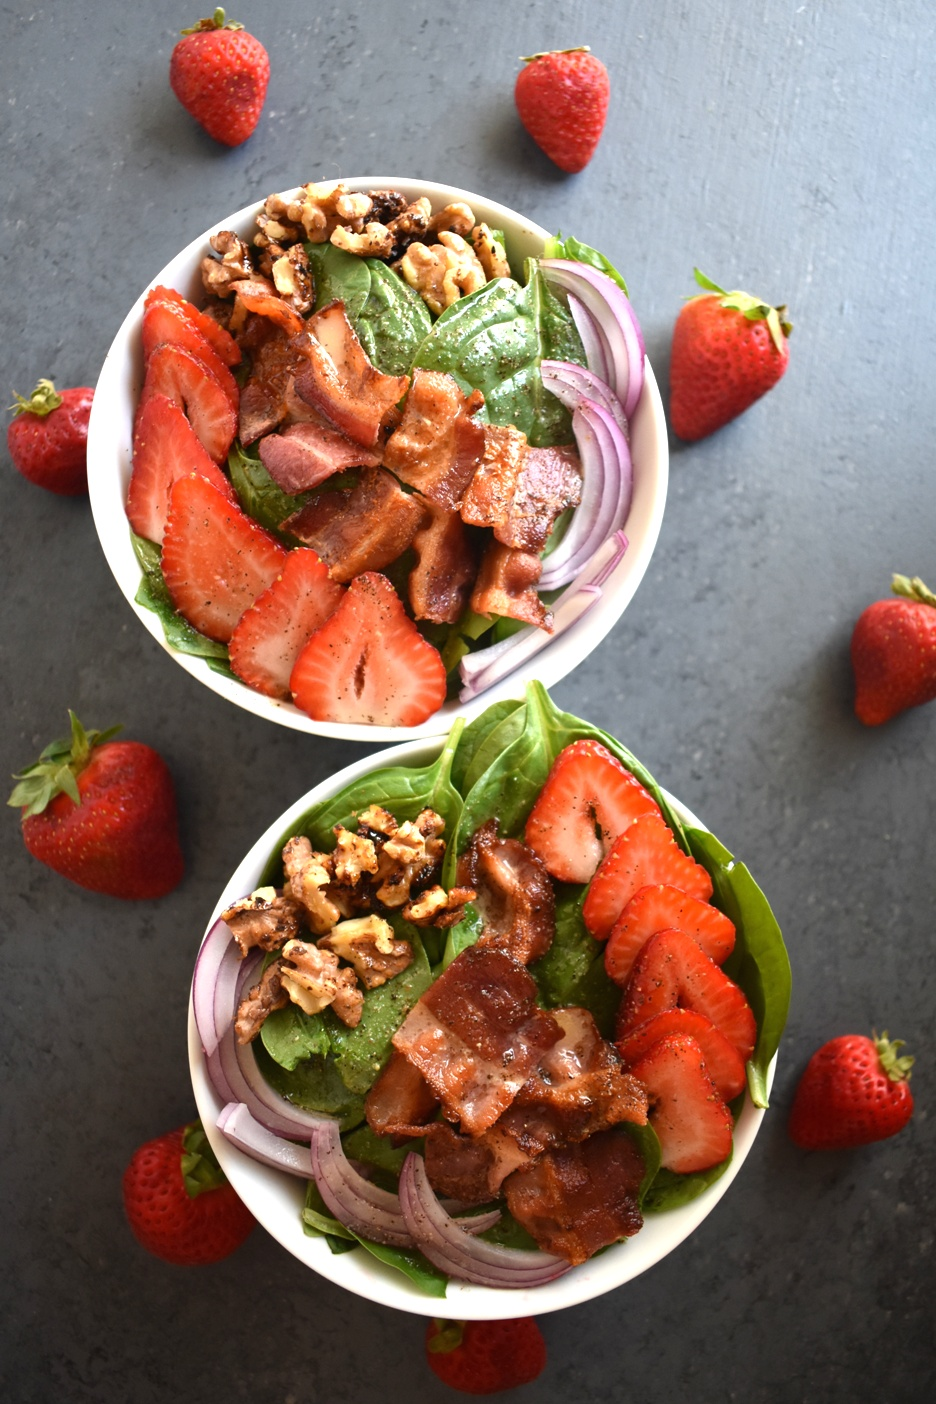 Strawberry Spinach Salad with Warm Bacon Vinaigrette is the perfect salad with red onions, strawberries, crispy bacon, toasted nuts and a warm bacon dressing! www.nutritionistreviews.com